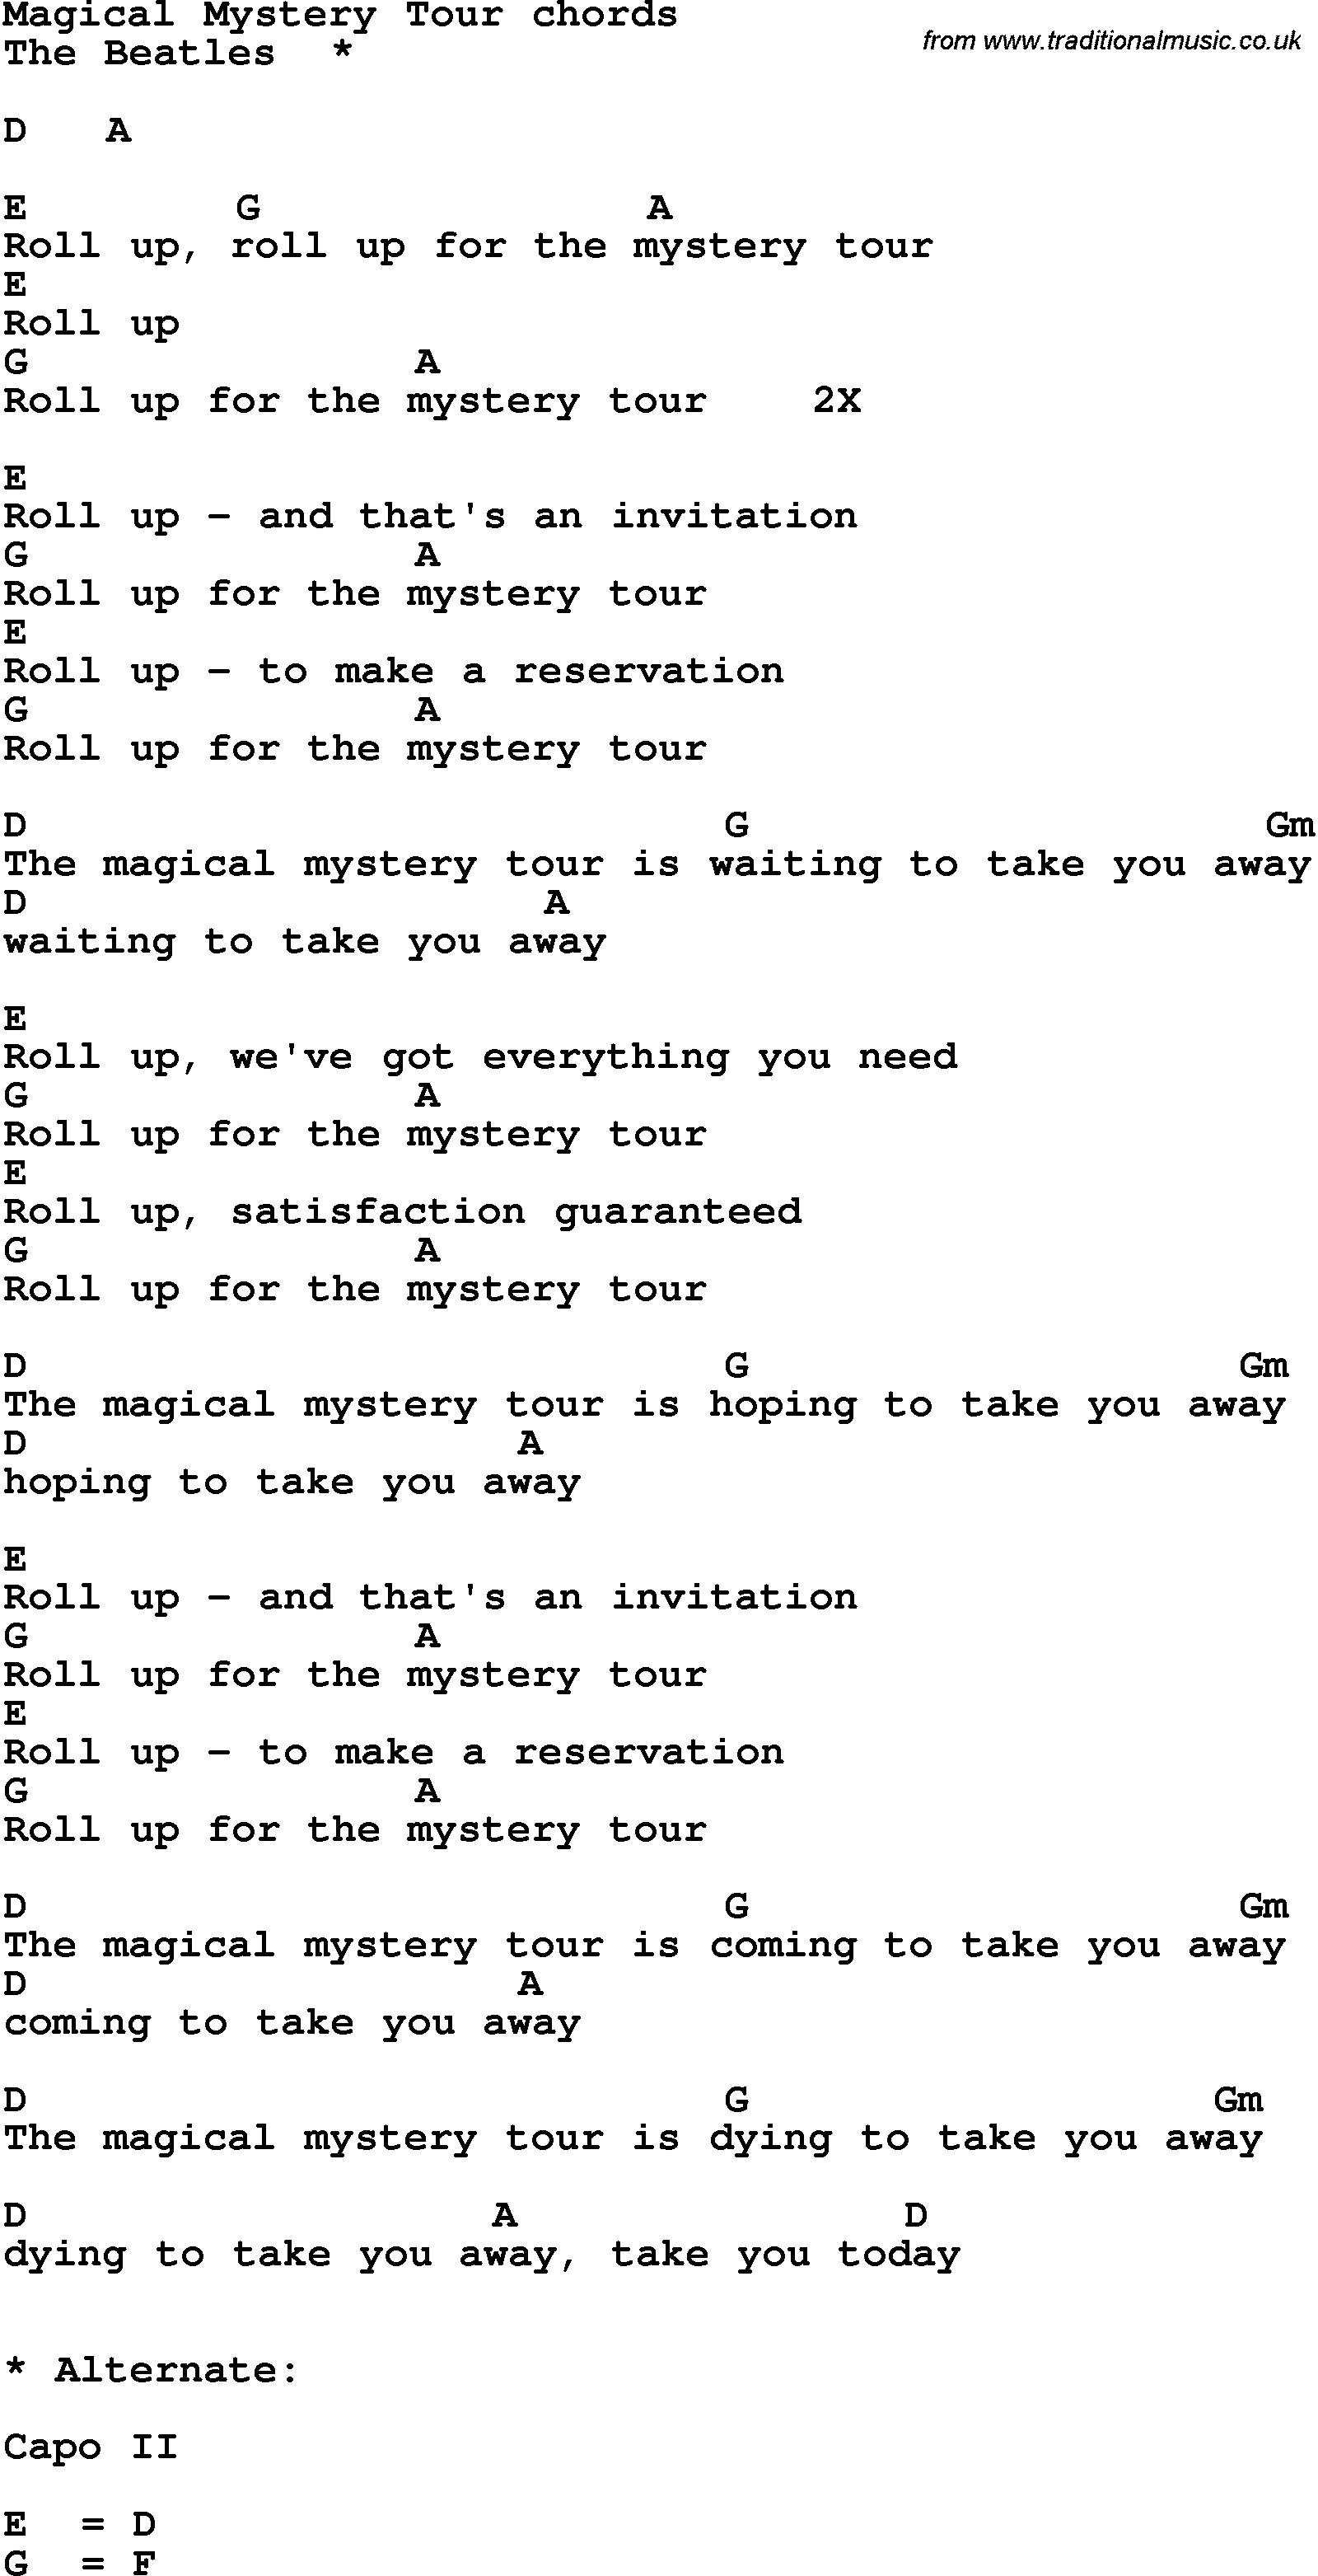 Beatles The Magical Mystery Tour Lyrics